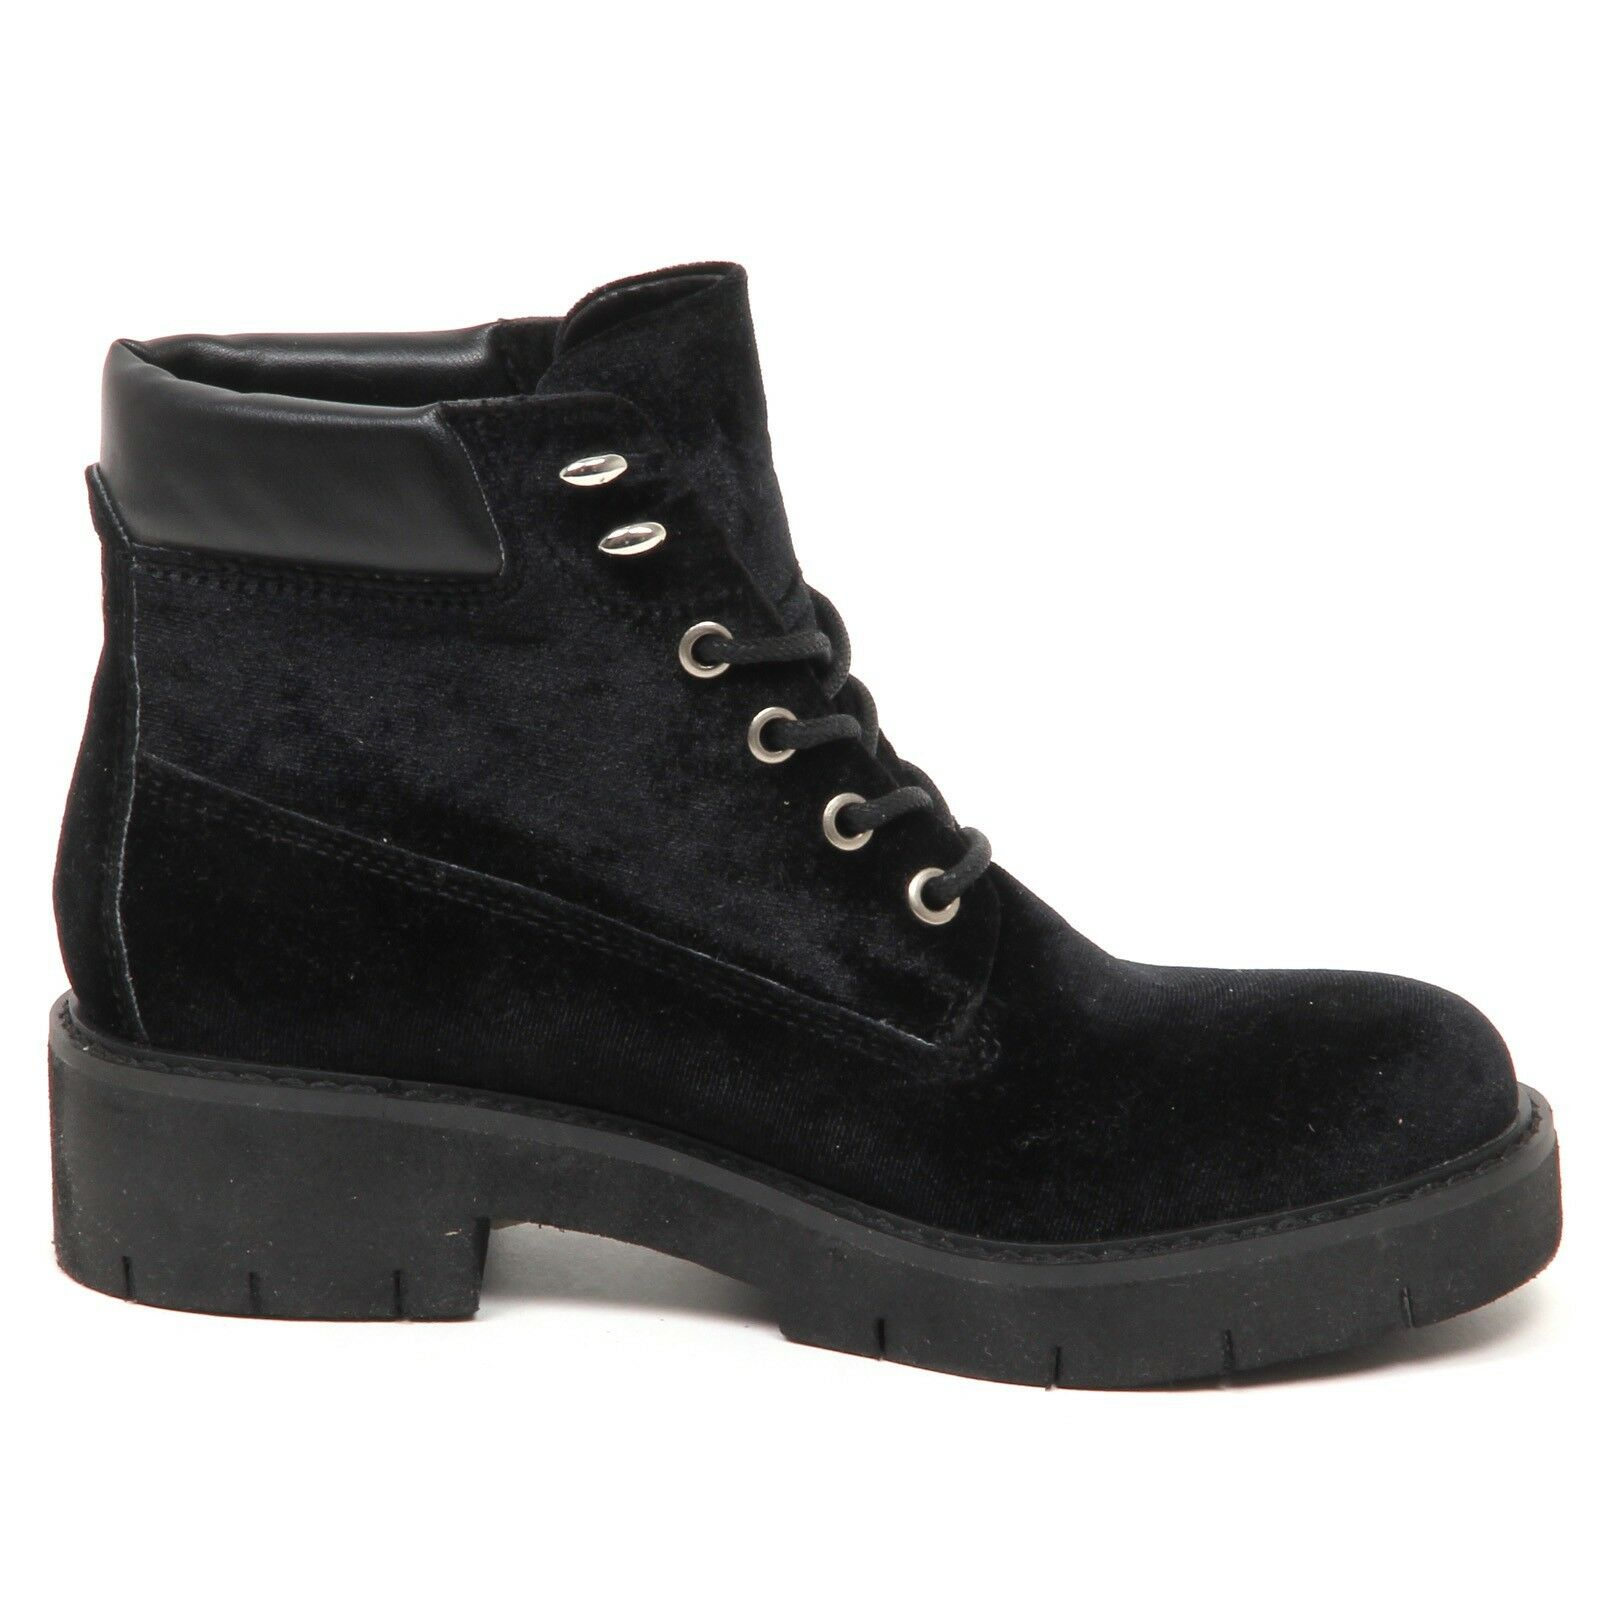 E0178 (without Box) scarponcino mujer Velvet Windsor Smith Comet negro negro negro zapatos Woman 335938